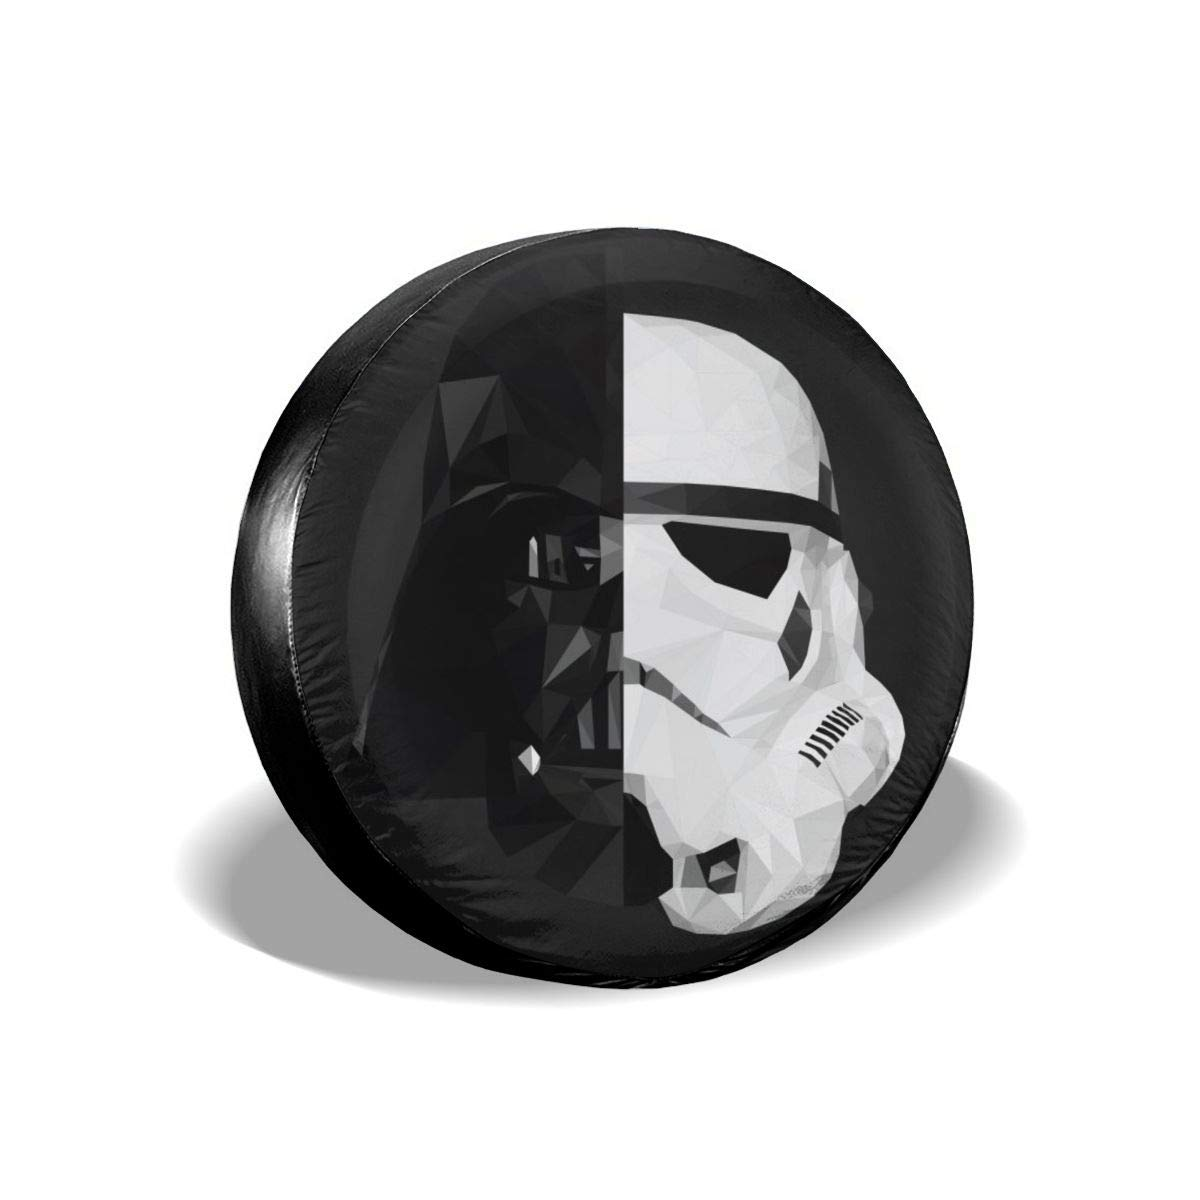 Truck and Many Vehicle Wheel Diameter 17inch RV SUV Storm Trooper Star Wars Spare Tire Cover Universal Dust-Proof Waterproof Wheel Covers-for Jeep Trailer